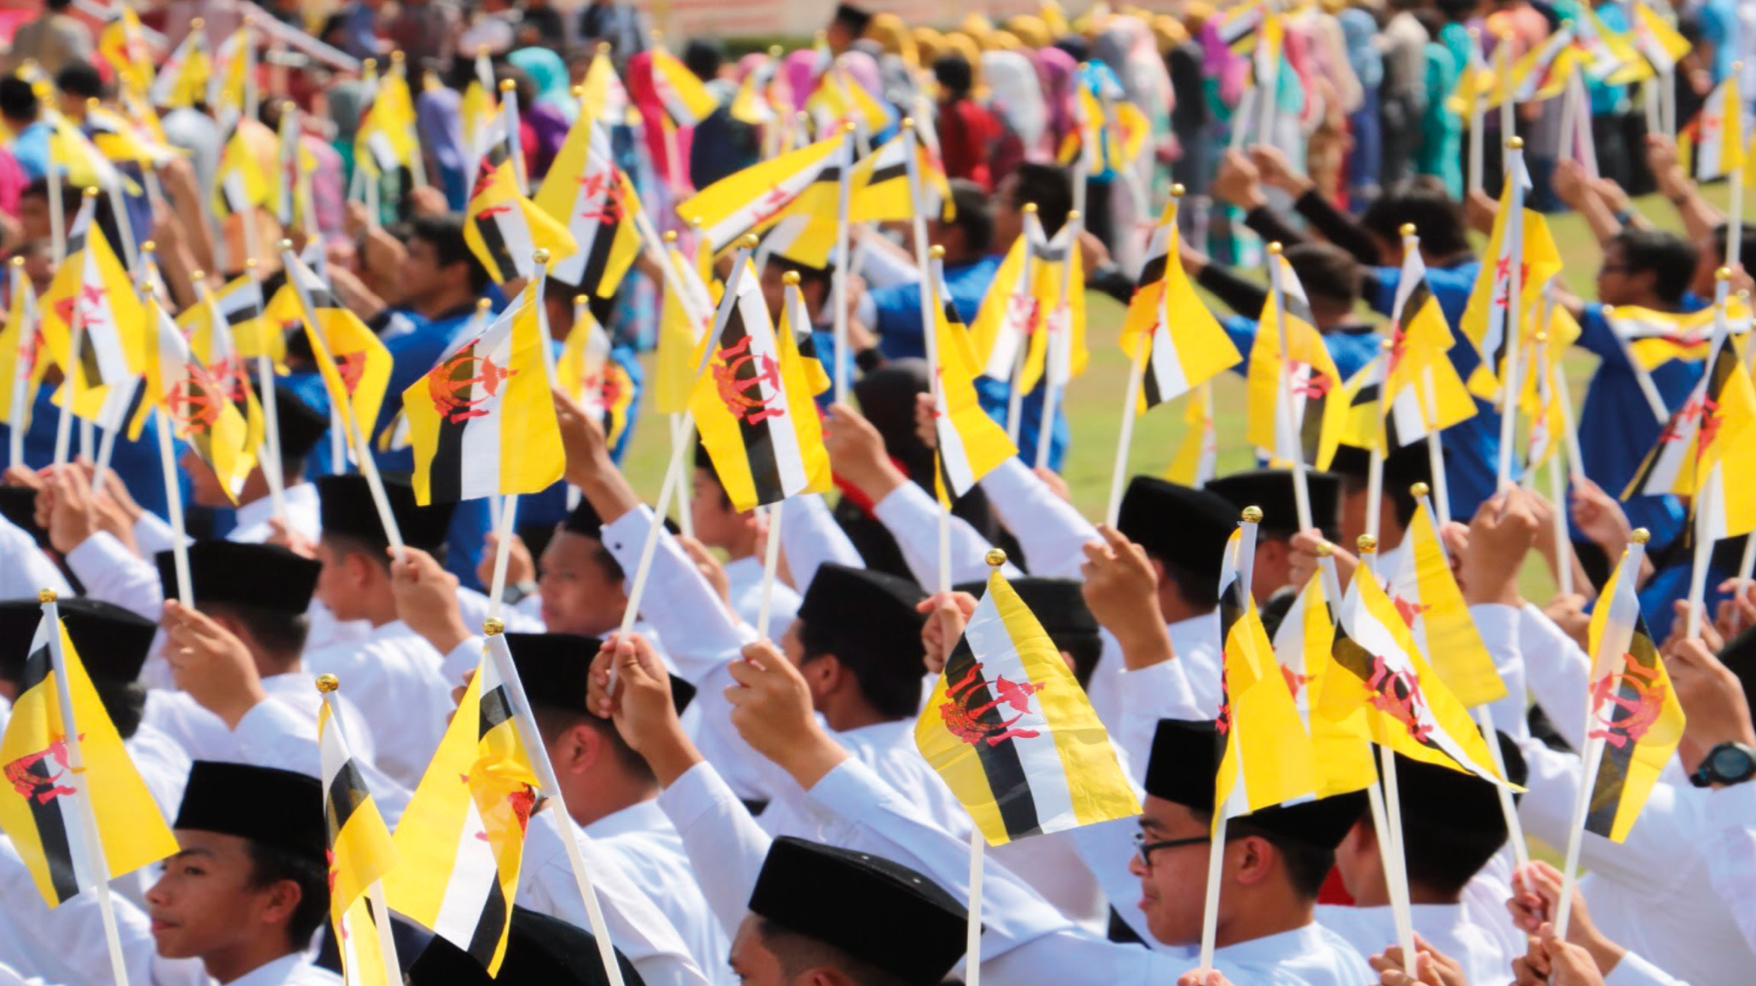 Brunei students holding flags